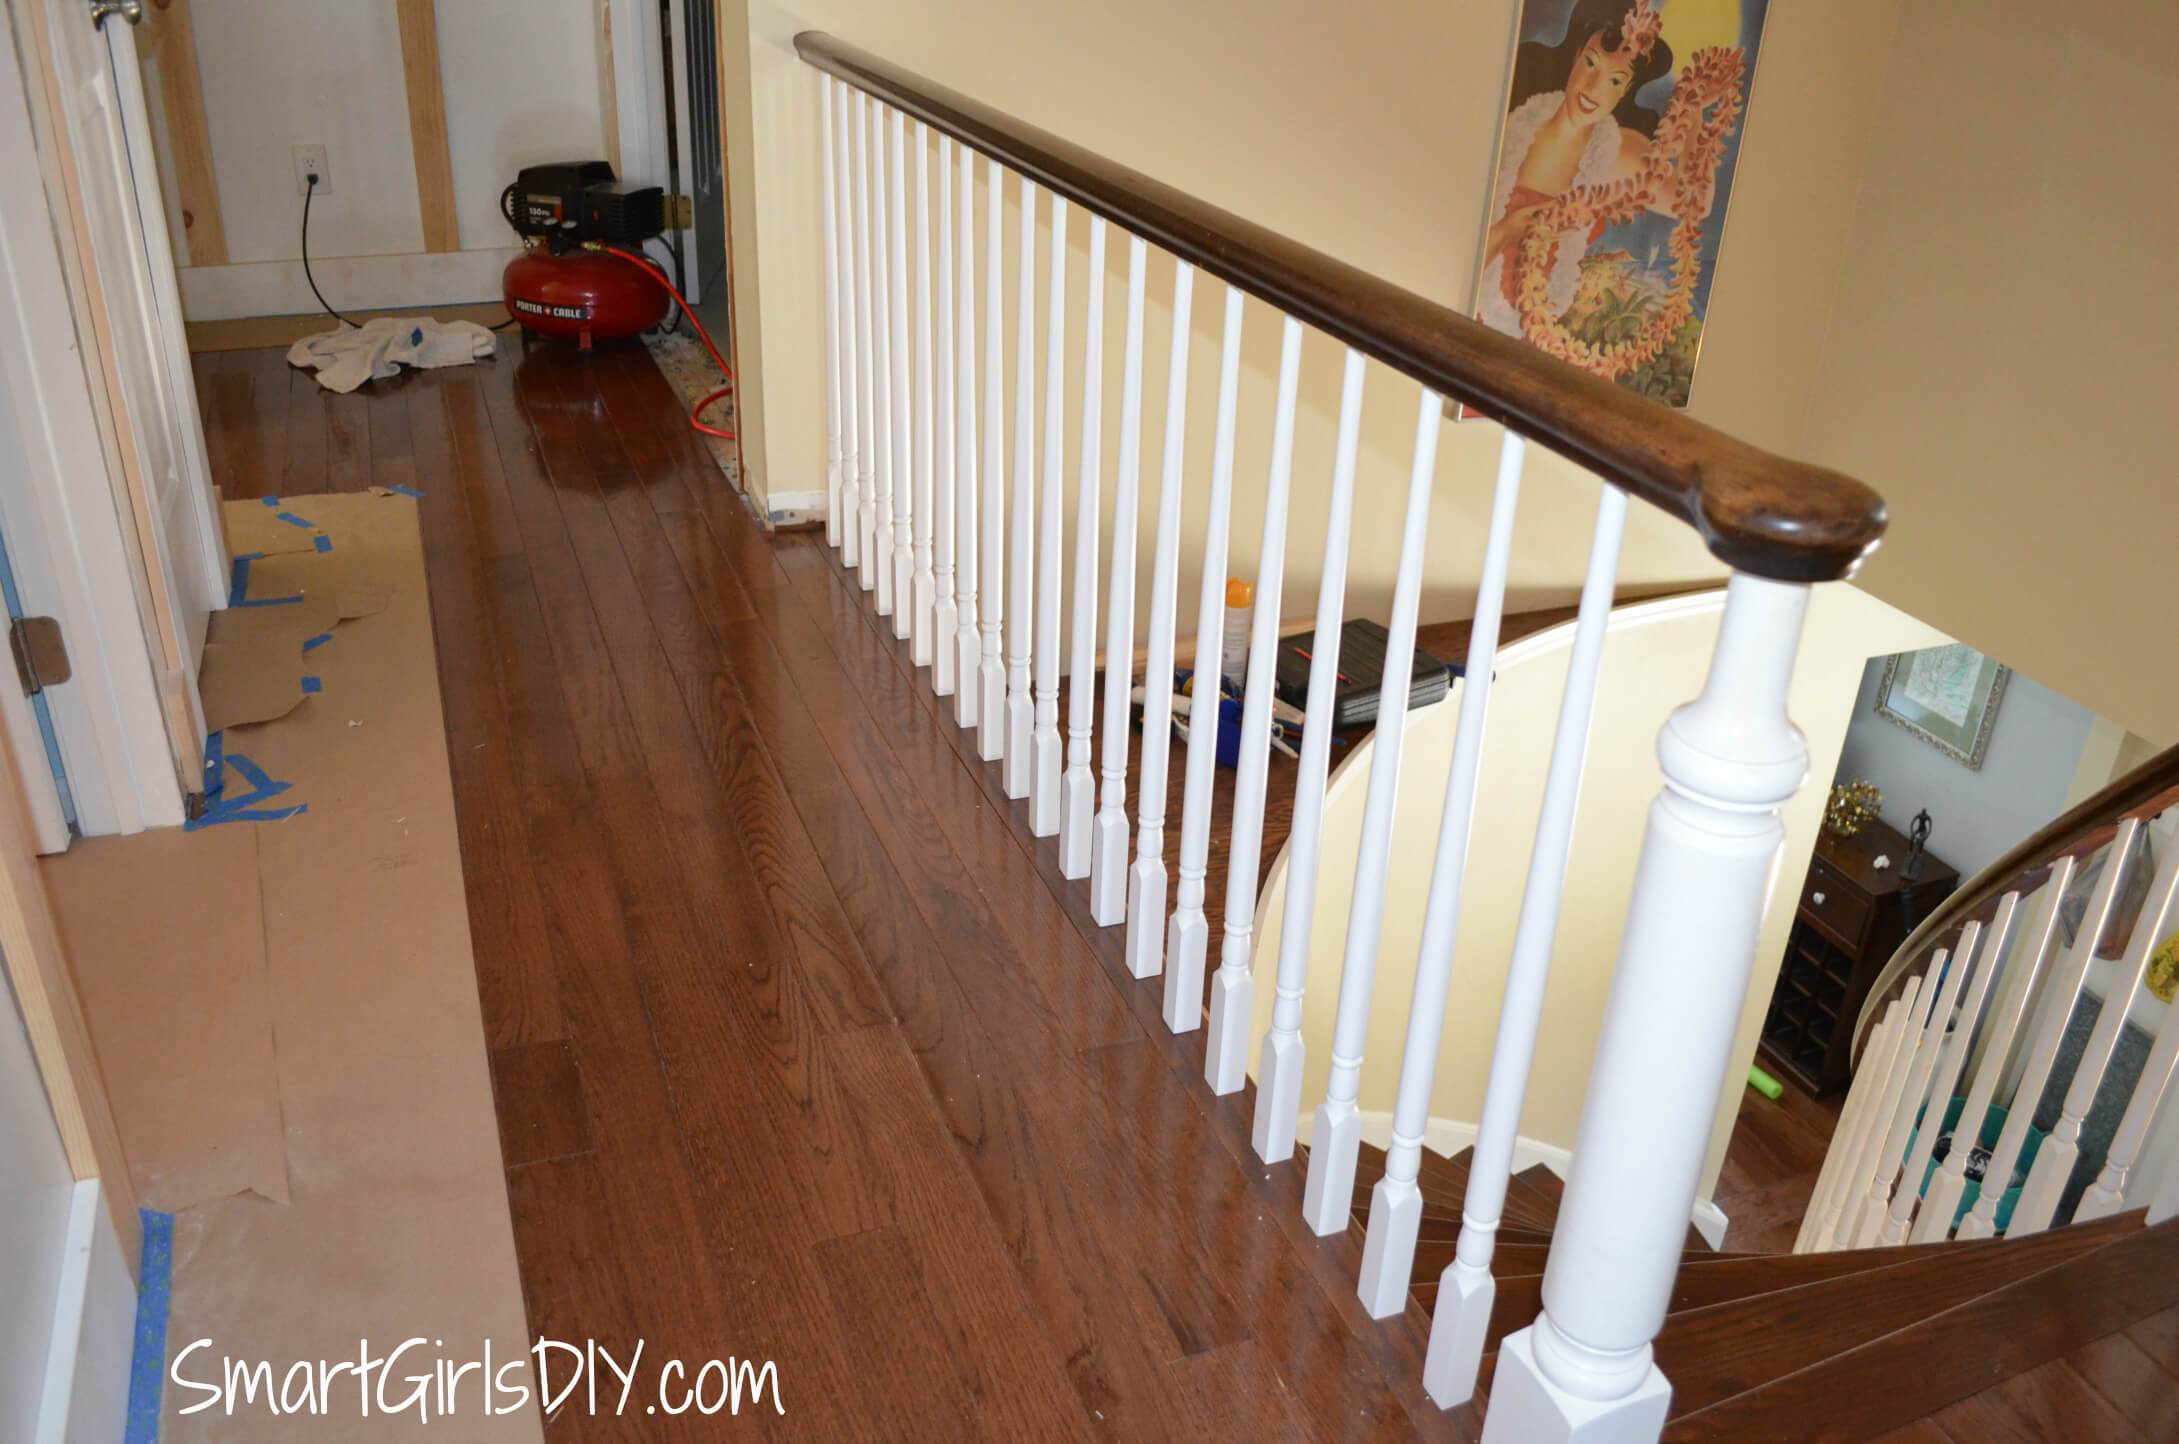 install hardwood flooring around banister of upstairs hallway 1 installing hardwood floors inside upstairs hallway 2 hardwood spindles